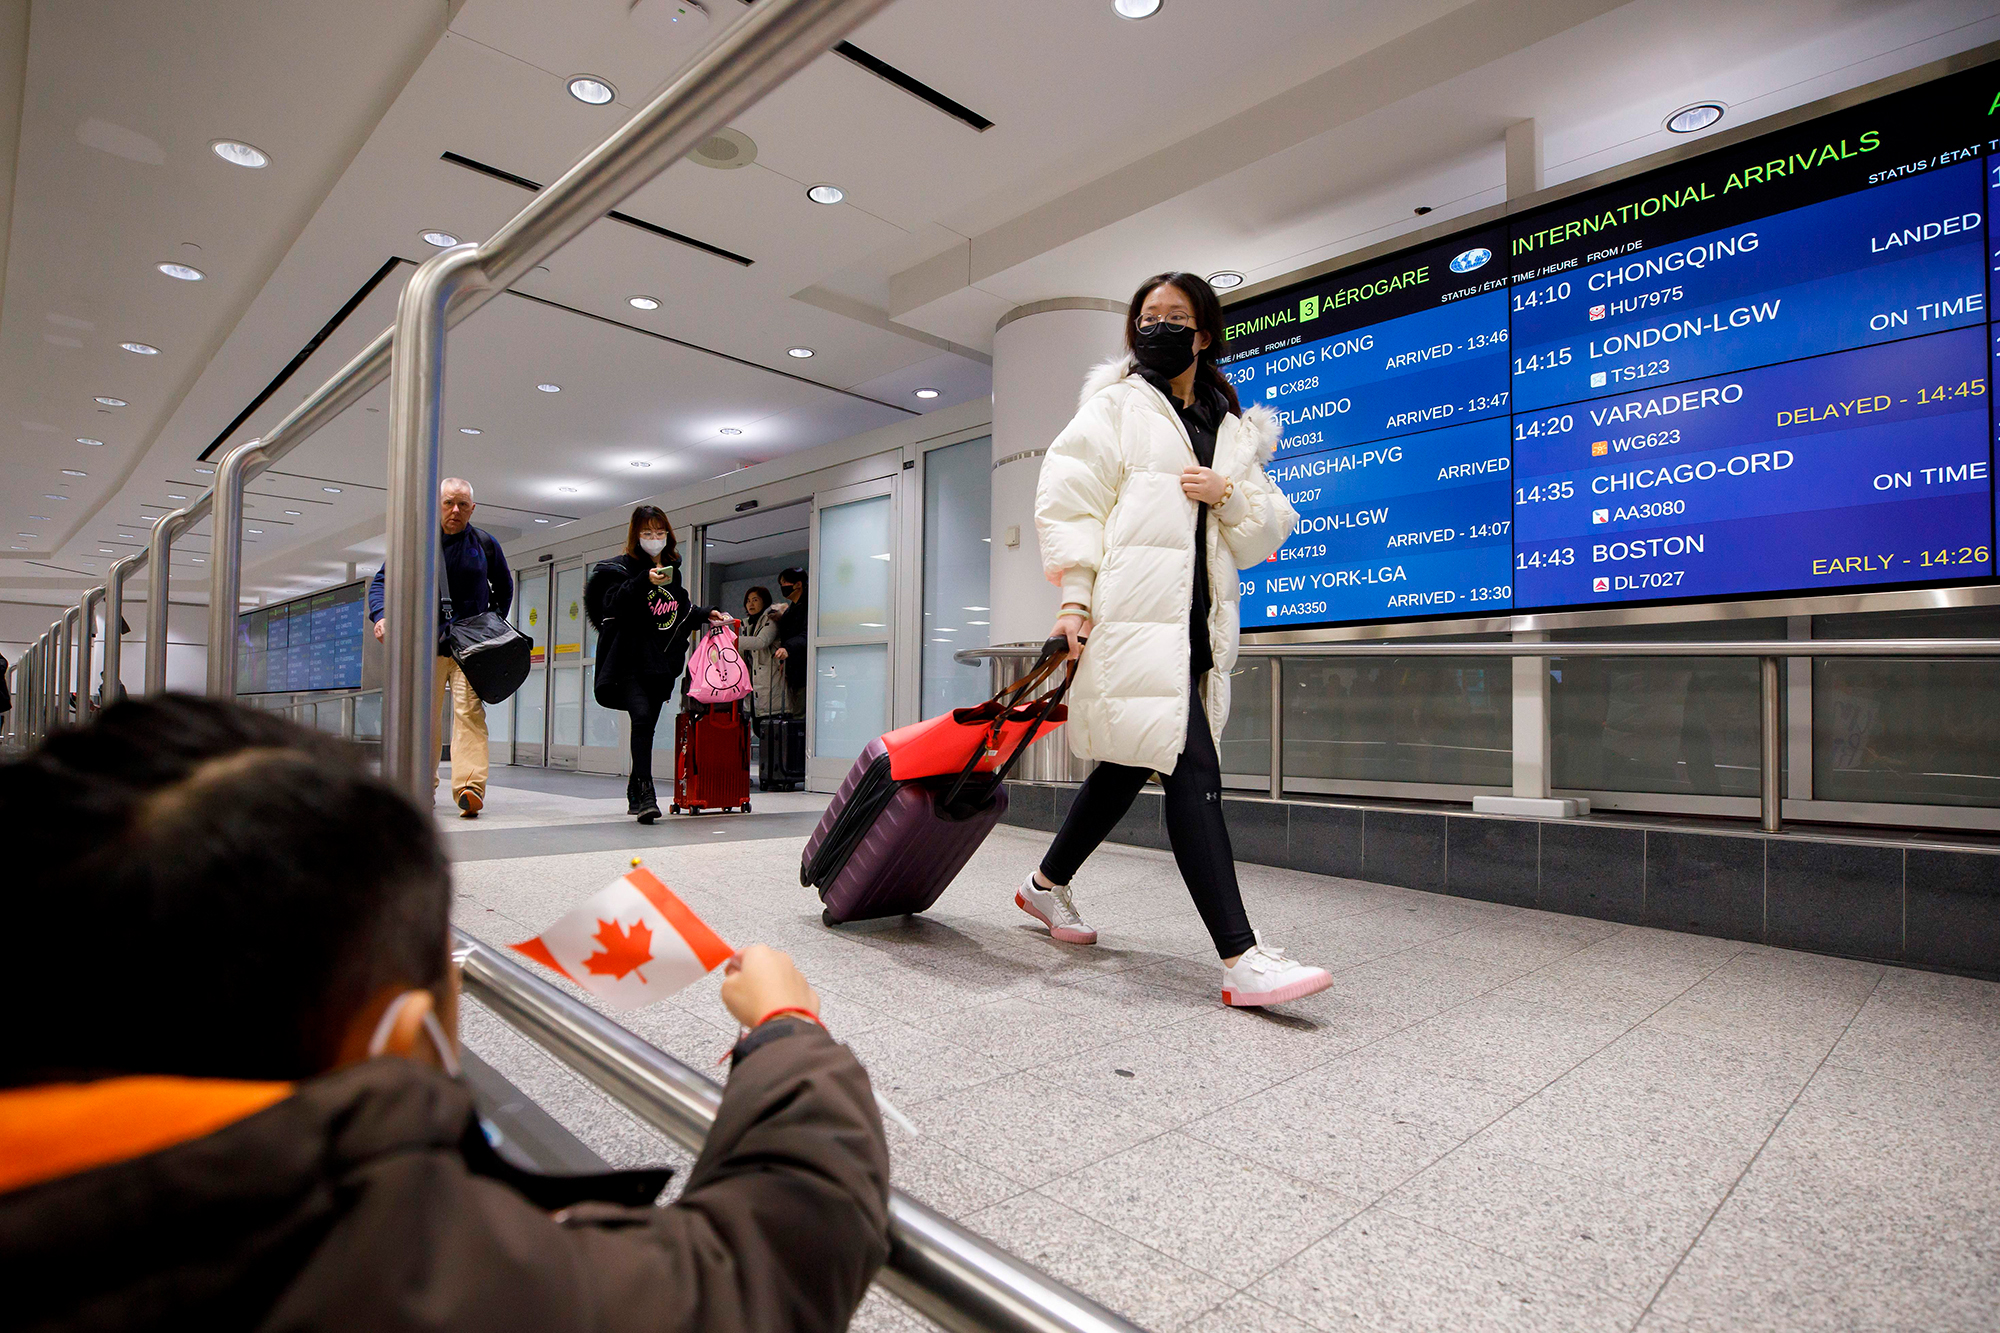 Travelers are seen wearing masks at the international arrivals area at the Toronto Pearson Airport on January 26.